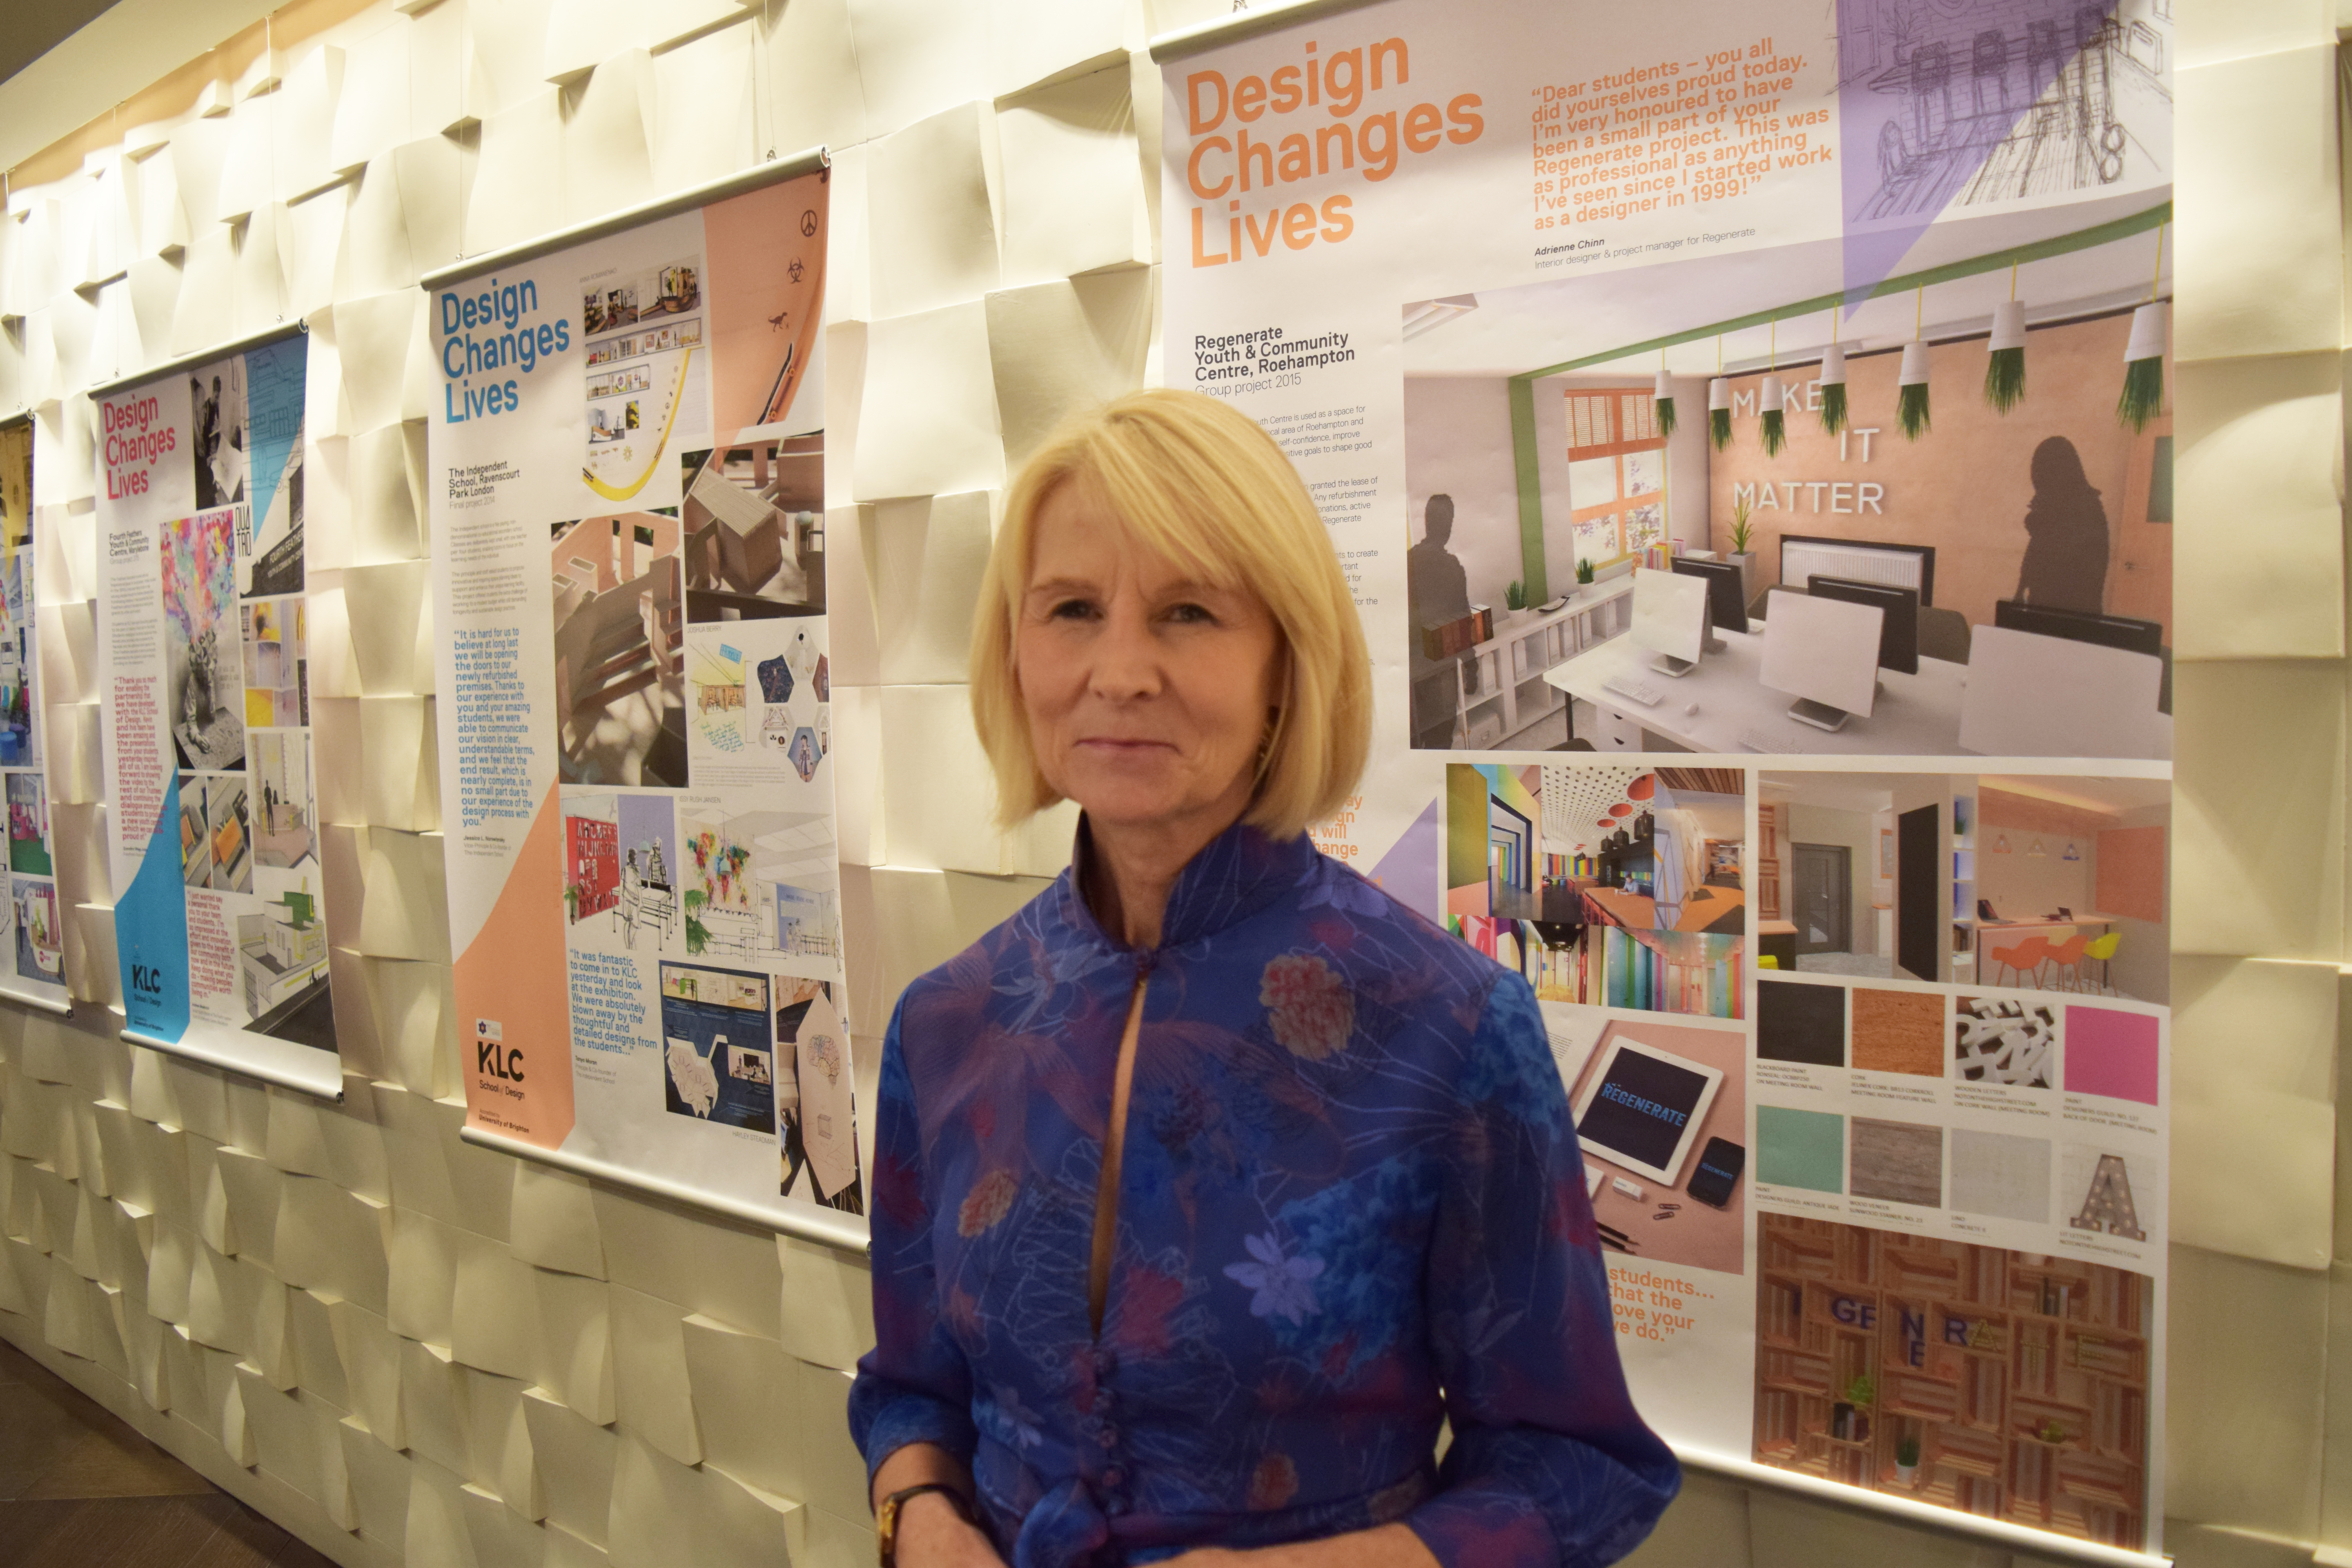 A photo of Jenny Gibbs - Design Changes Lives Foundation